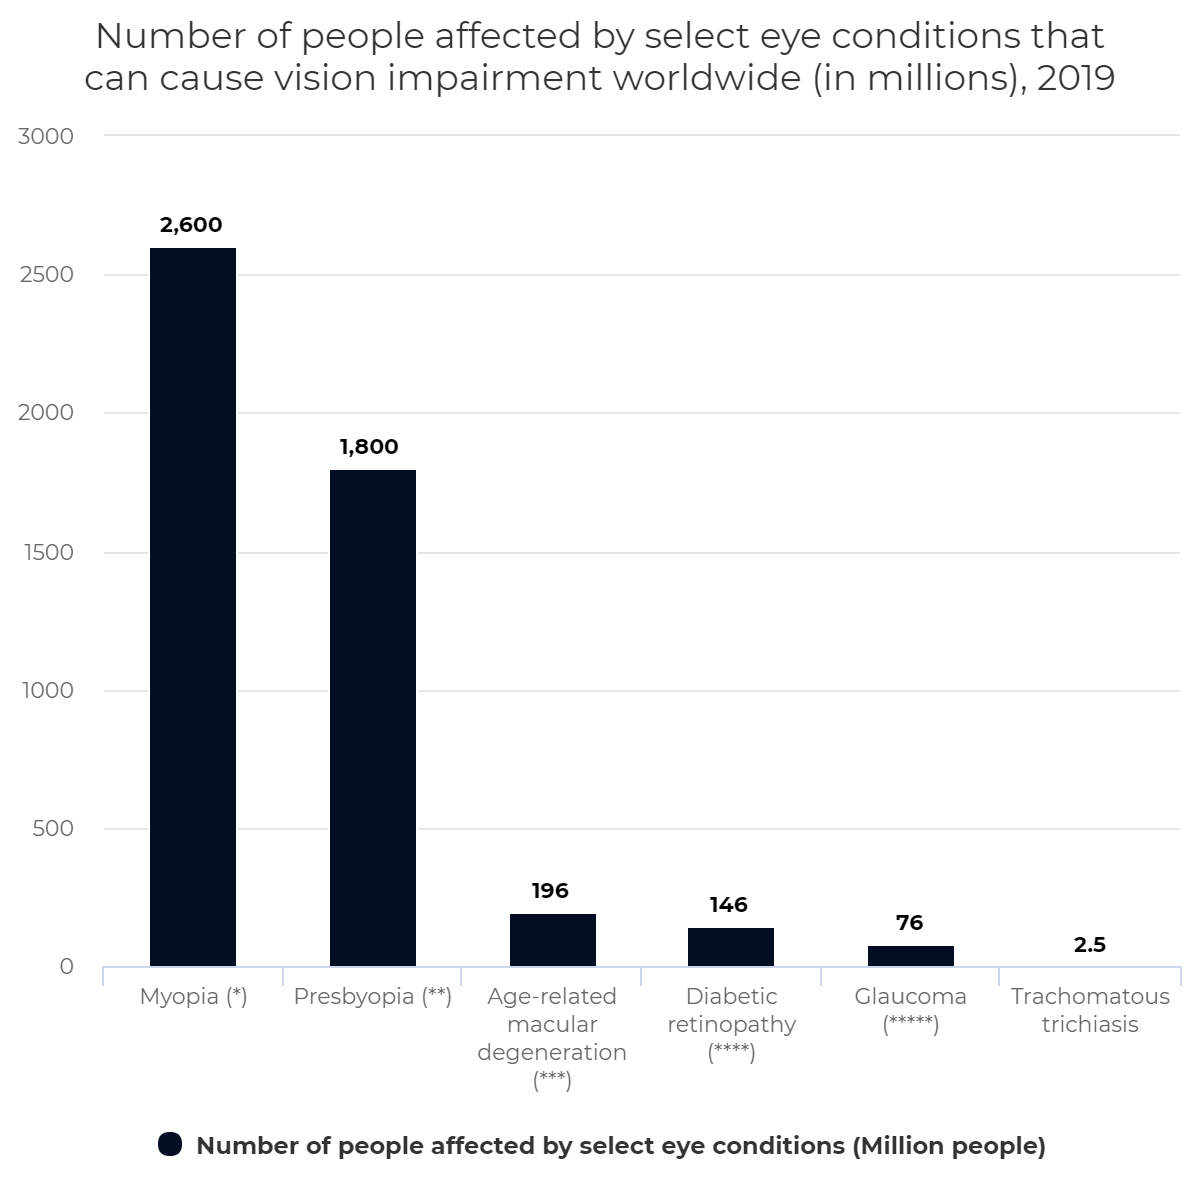 Number of people affected by select eye conditions that can cause vision impairment worldwide (in millions), 2019